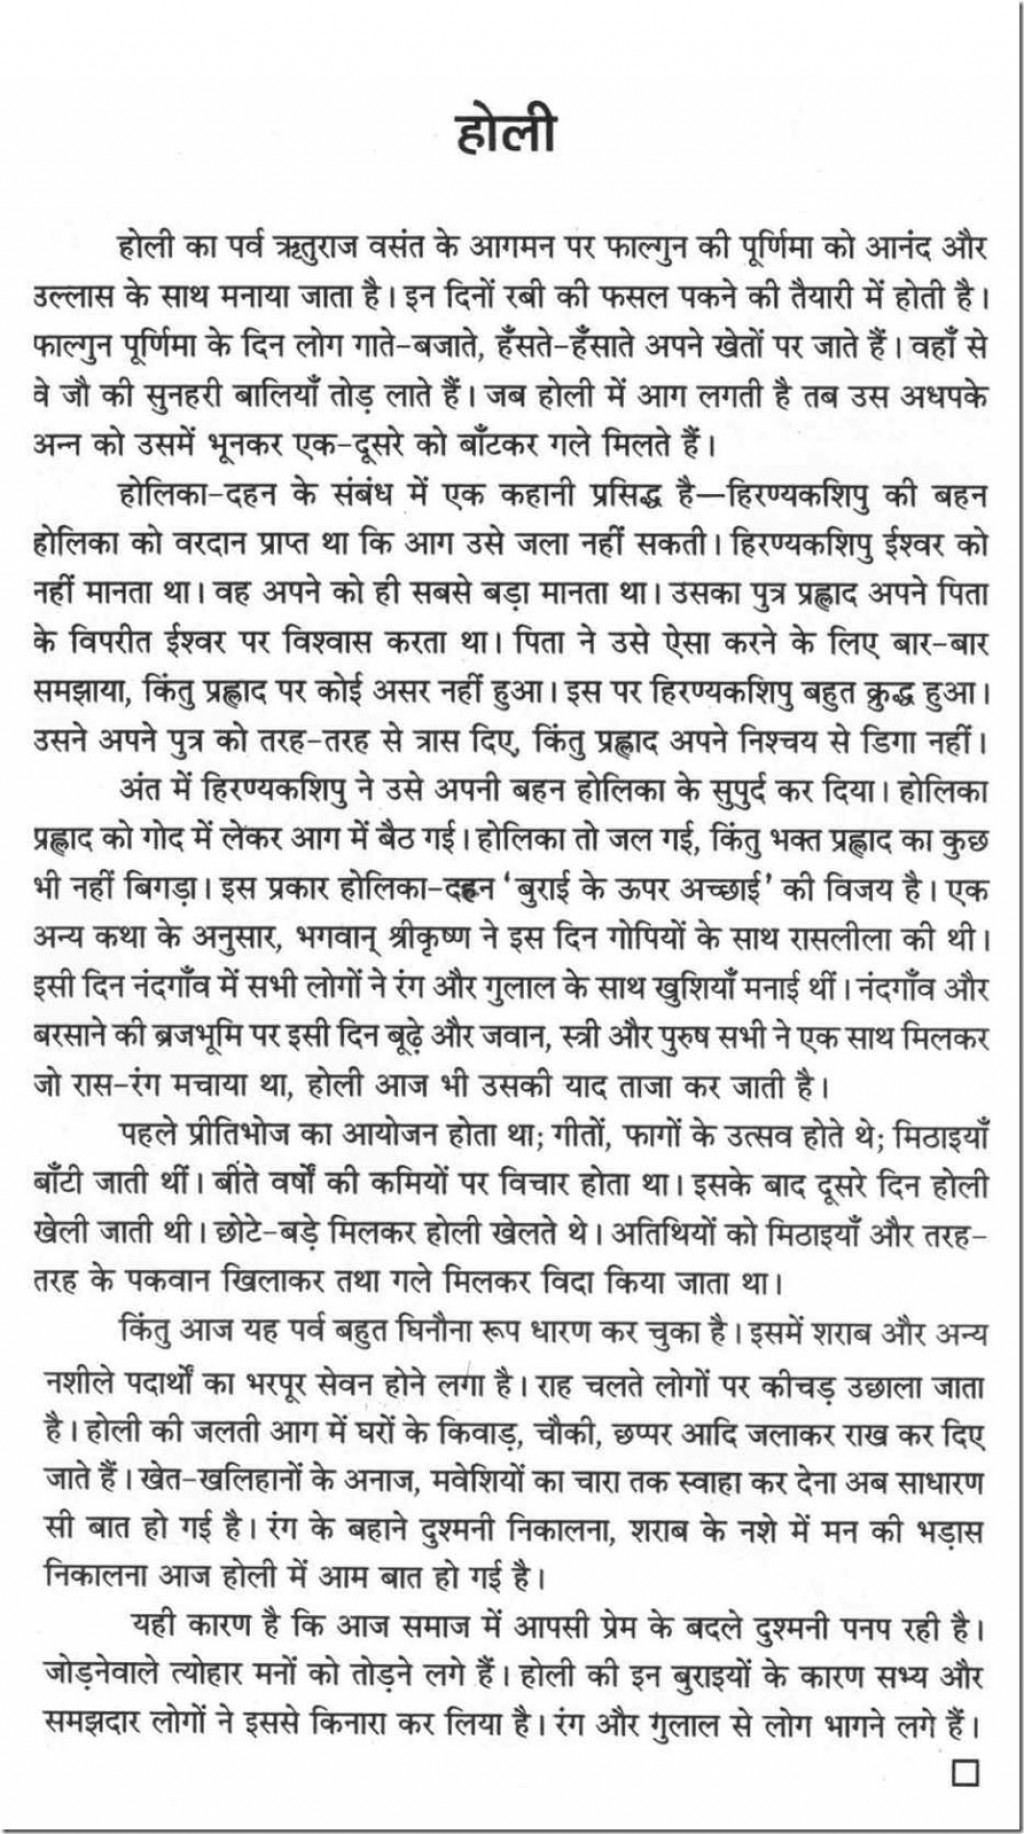 006 Cleanliness Essay In Hindi Example Sensational Is Godliness School Large